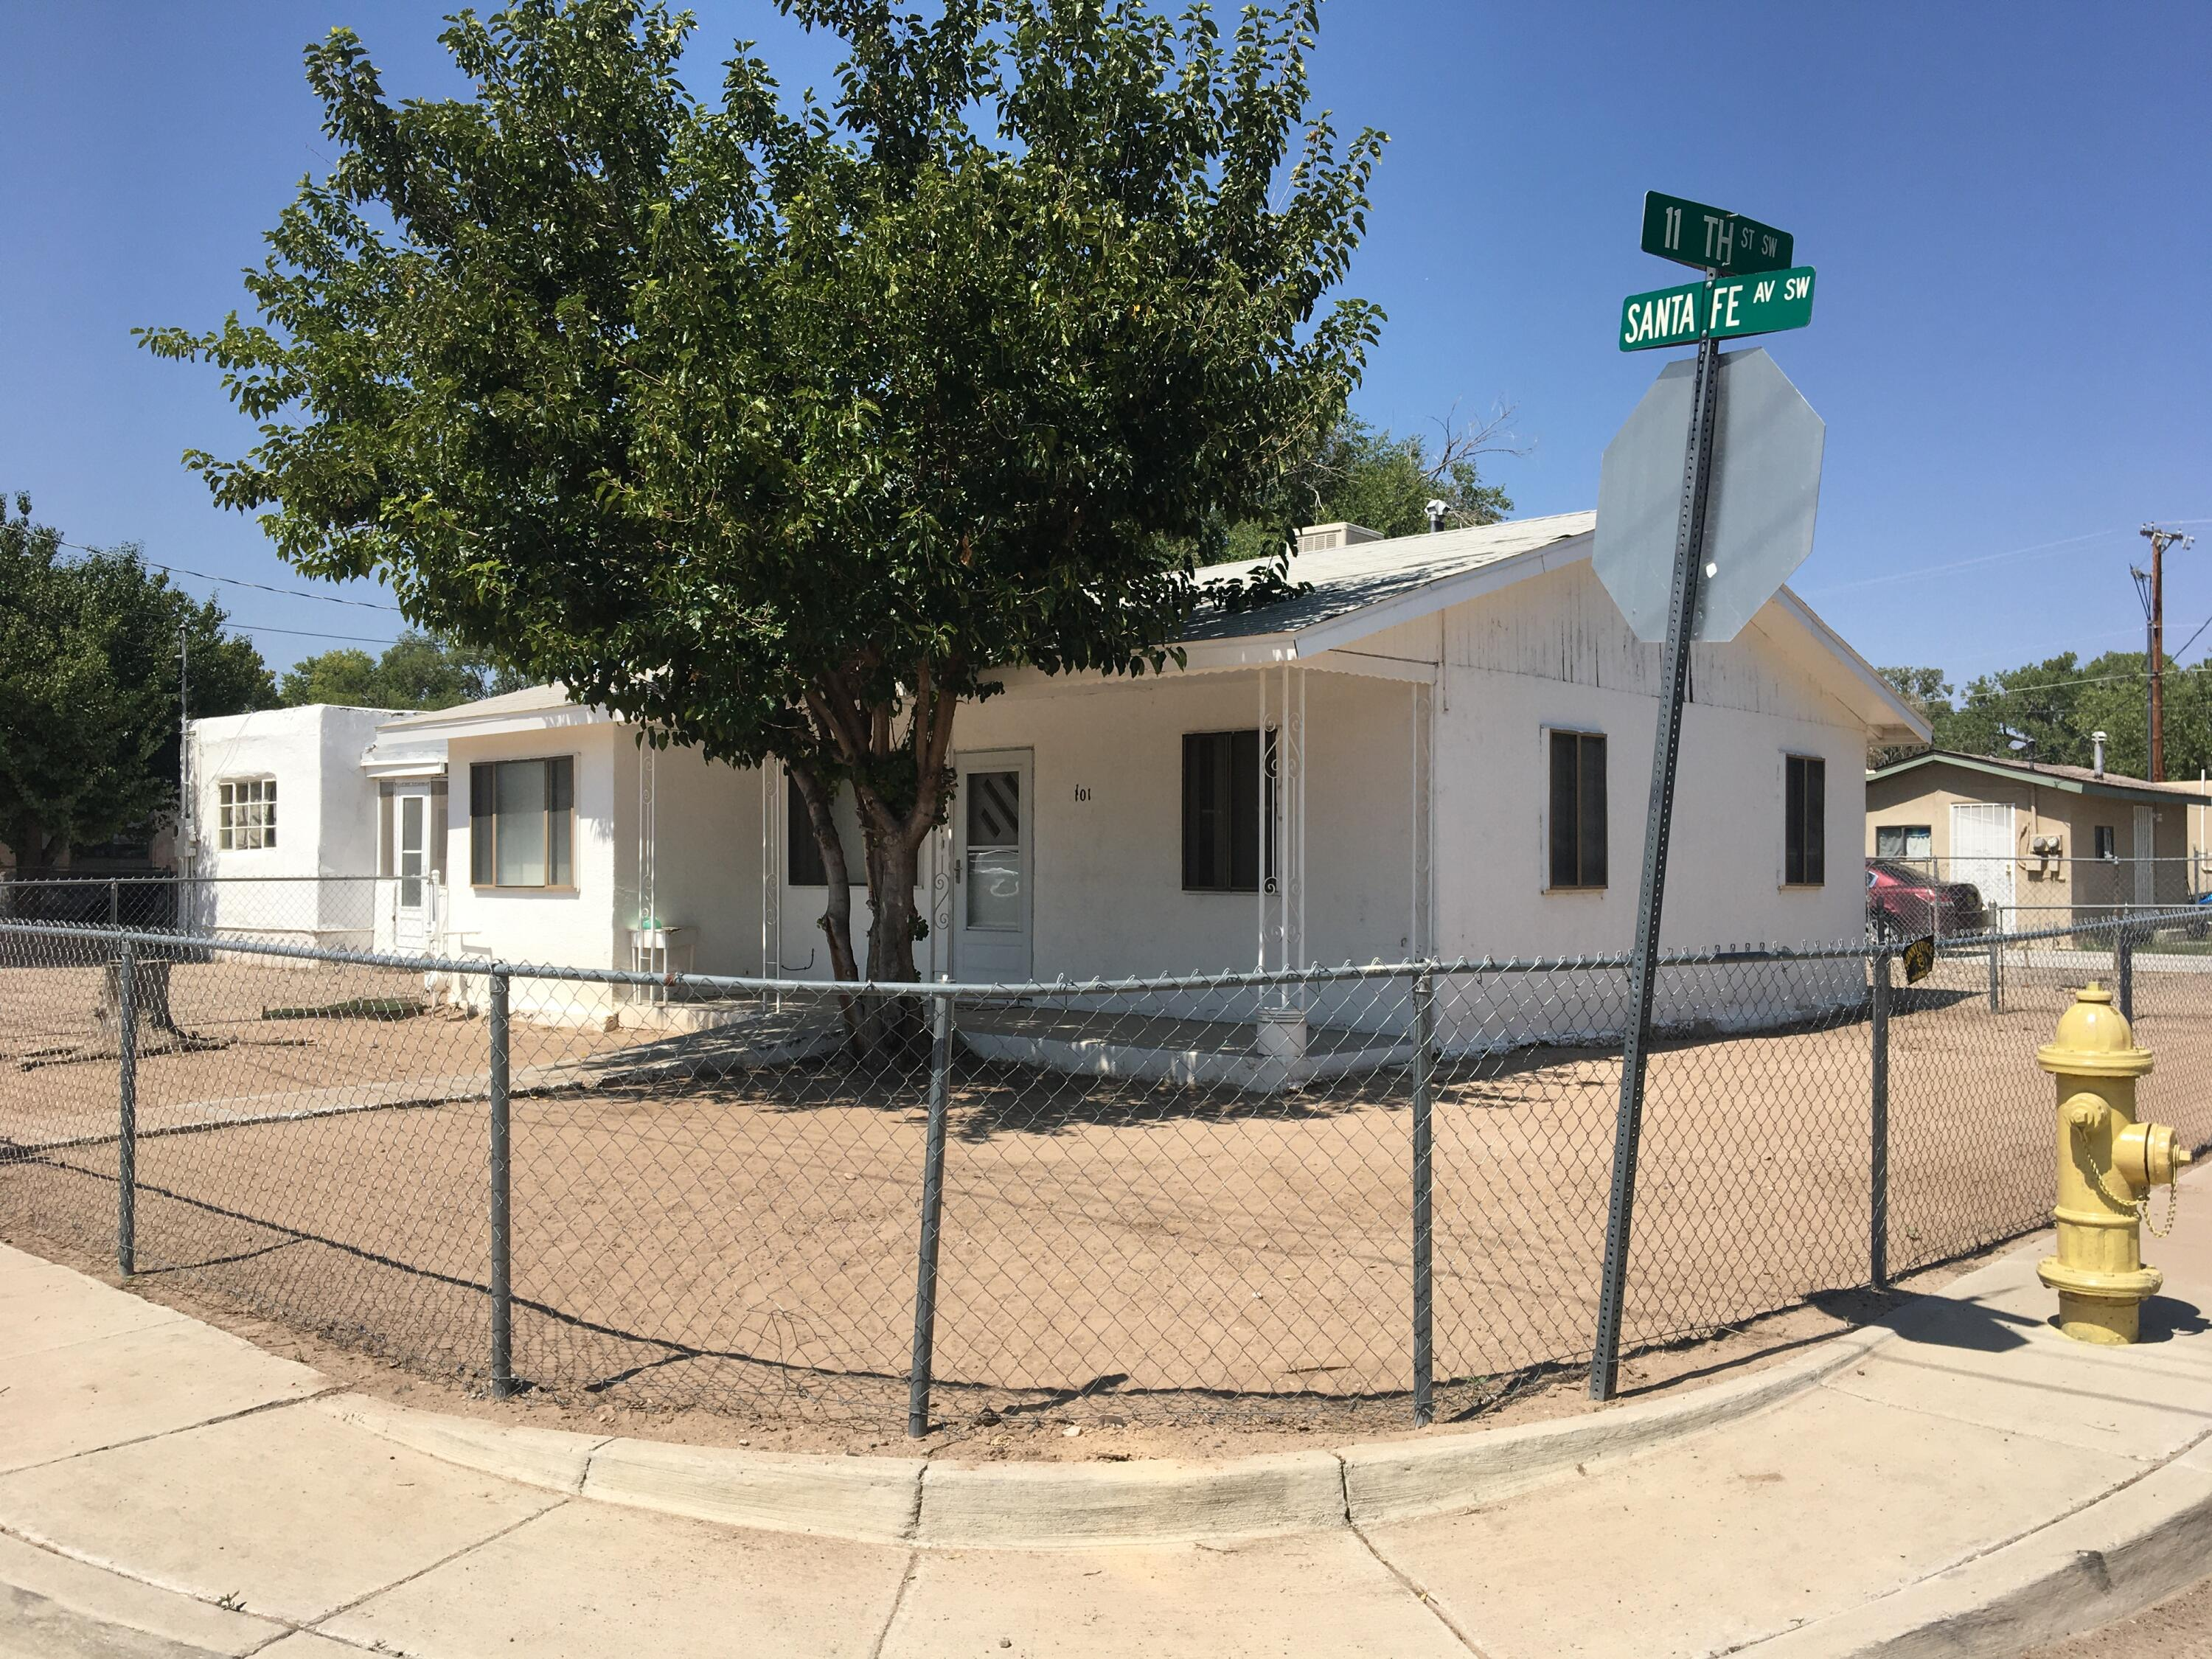 Great Find!  Two homes near the zoo!  Both Sold together.  1101 has 2 bedrooms and 1 bath and is ok to move in now.  1105 needs some remodel but both could be amazing homes.  There is only one water line and one sewer line for both properties, so they are selling together.  Buyer to assume the cost to City of ABQ expansion charge is $6224 + cost of plumber to add water tap and sewer tap to property, if desired.   Amazing opportunity in this area!